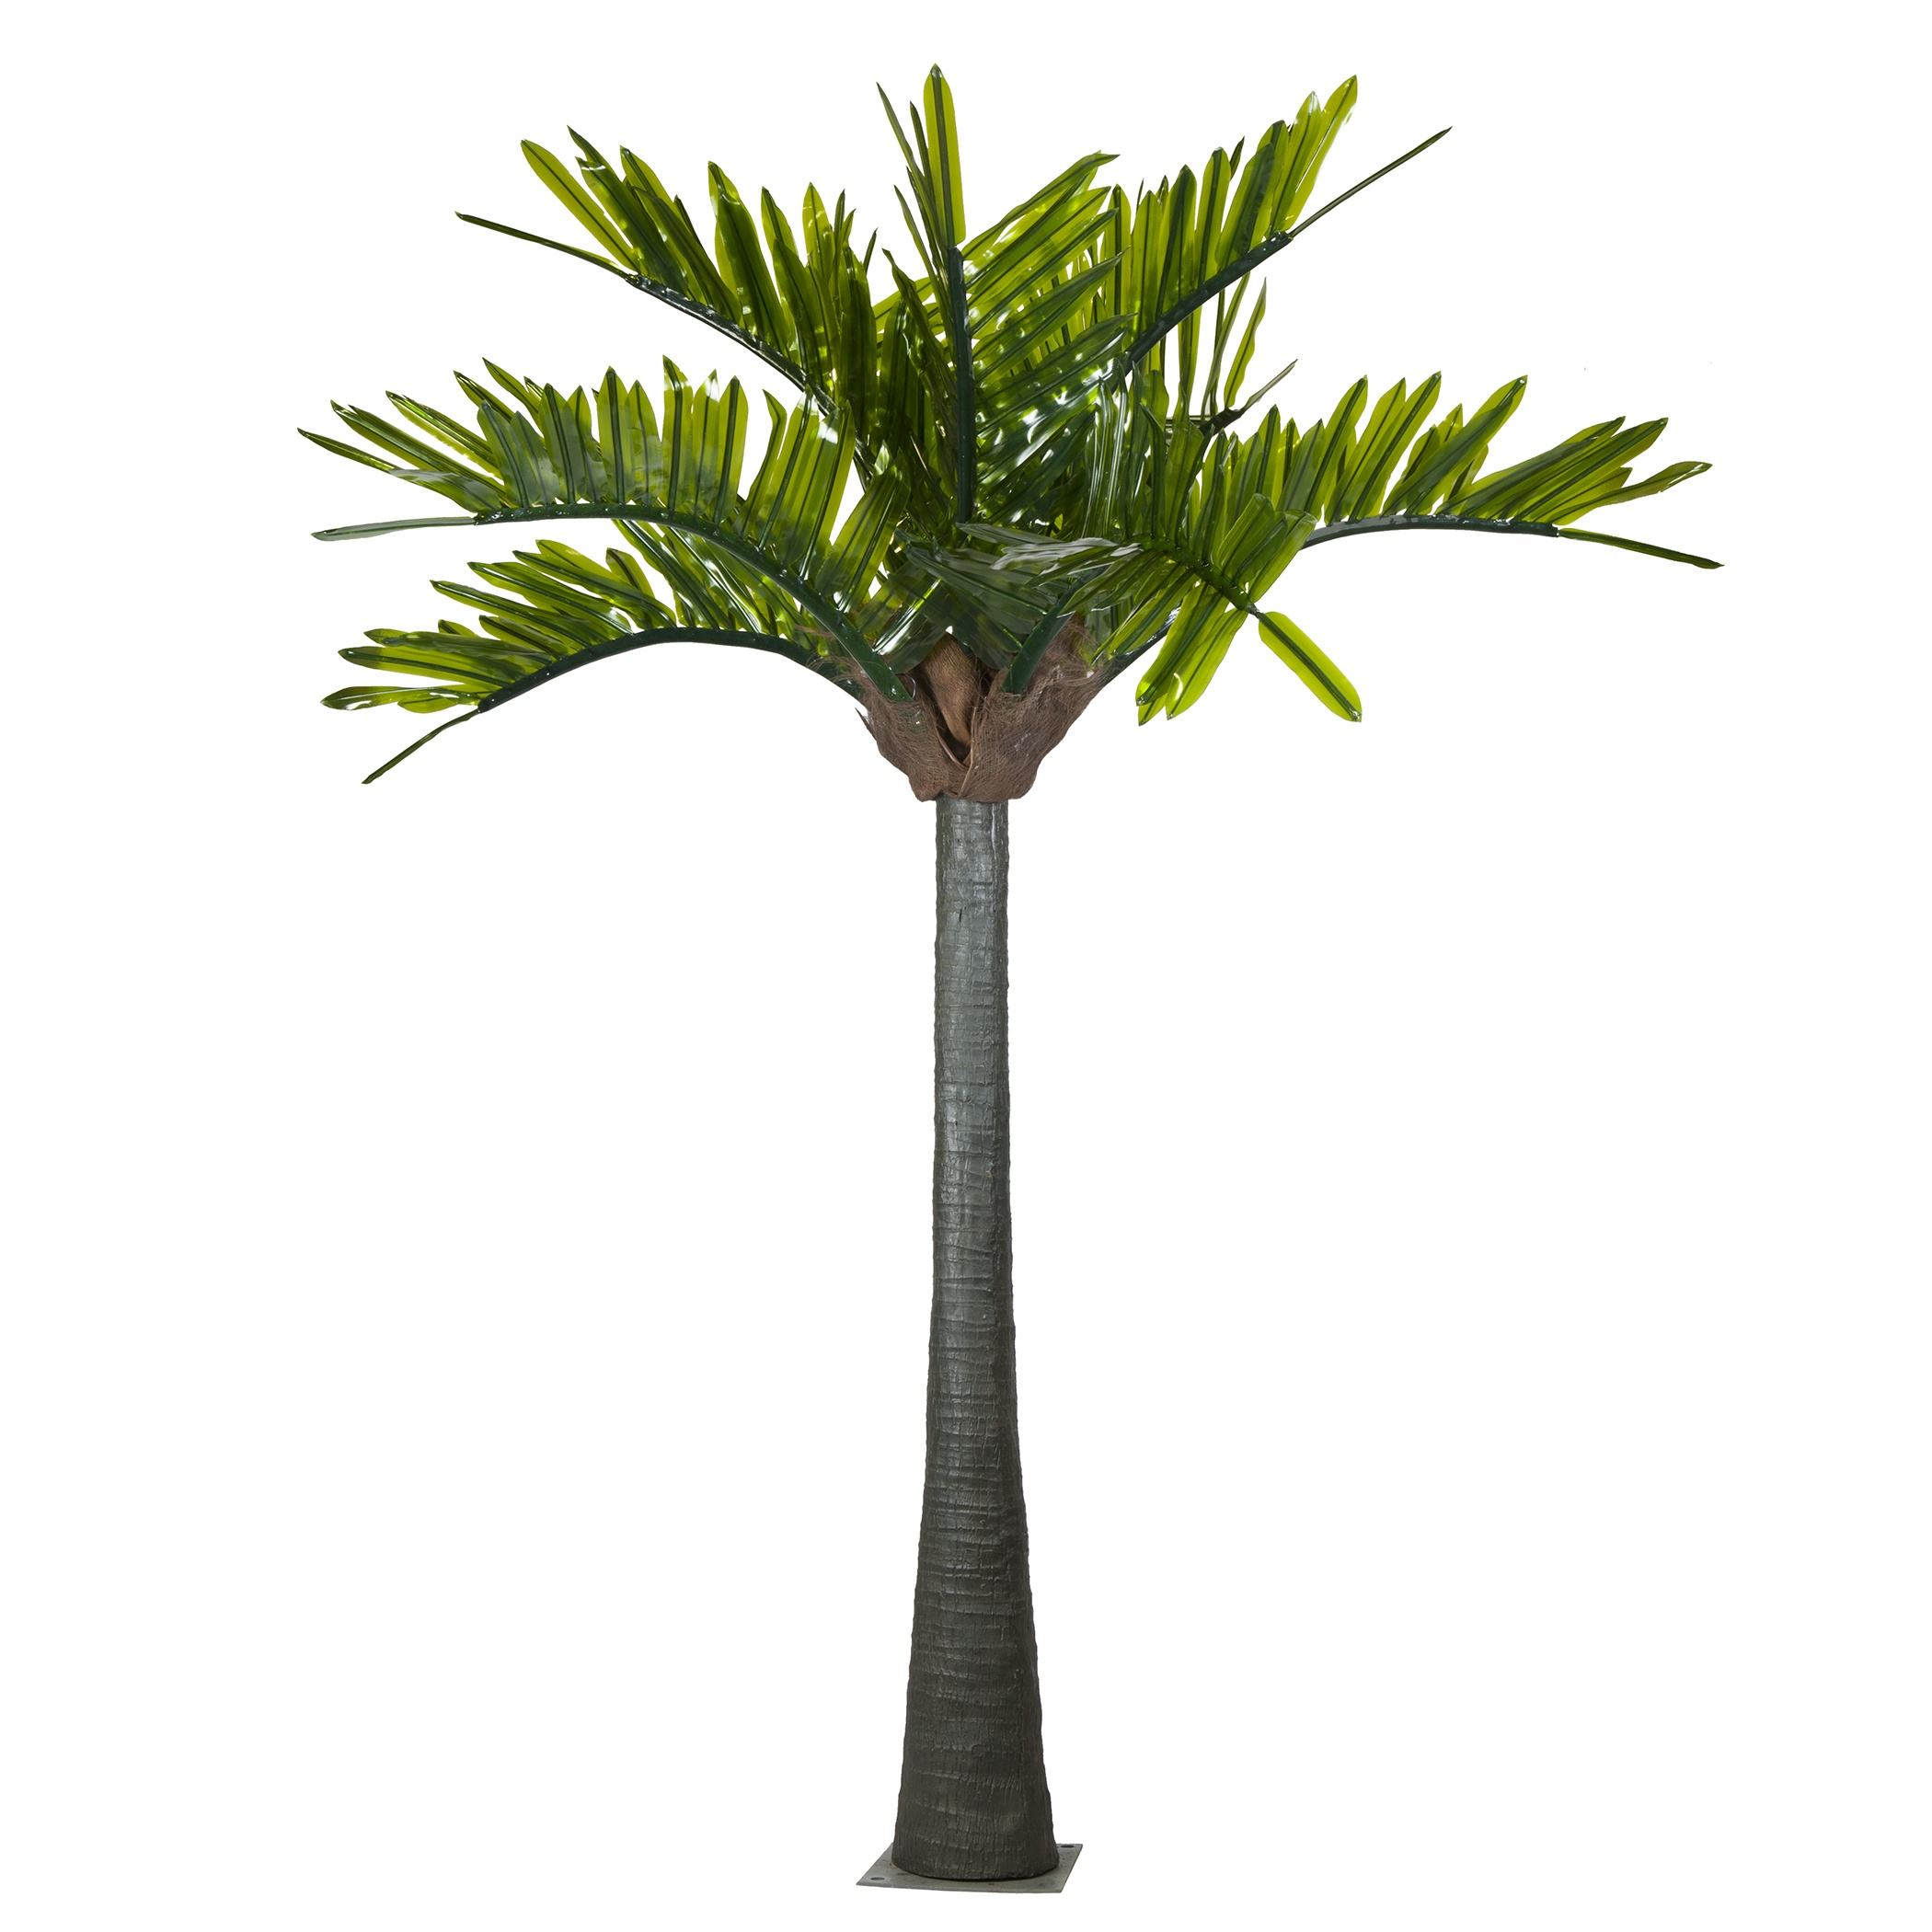 Lighted Palm Trees - 20u0026#39; LED Palm Tree - Natural Green